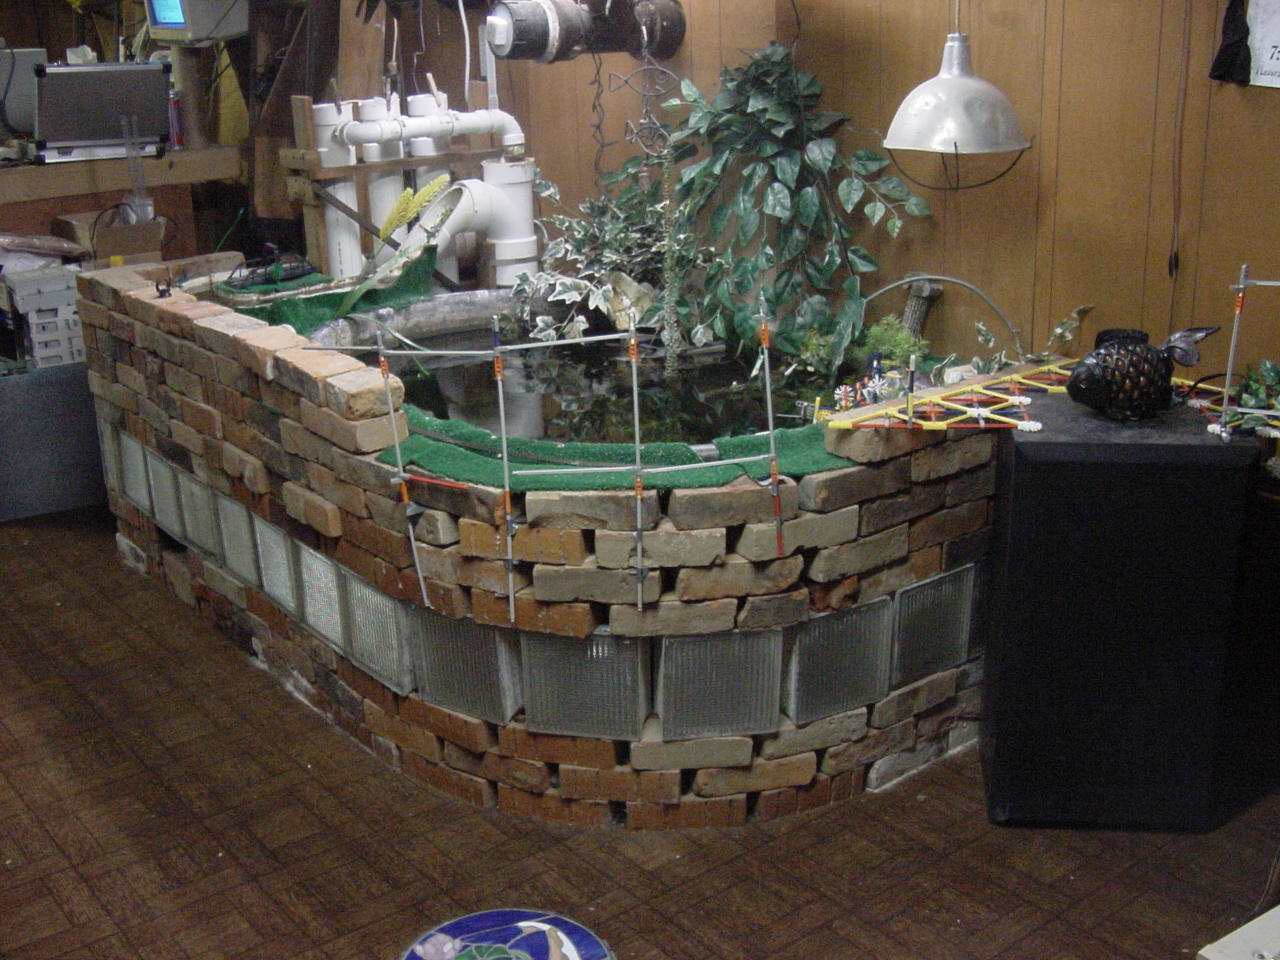 Dungen studeos pond Diy indoor turtle pond